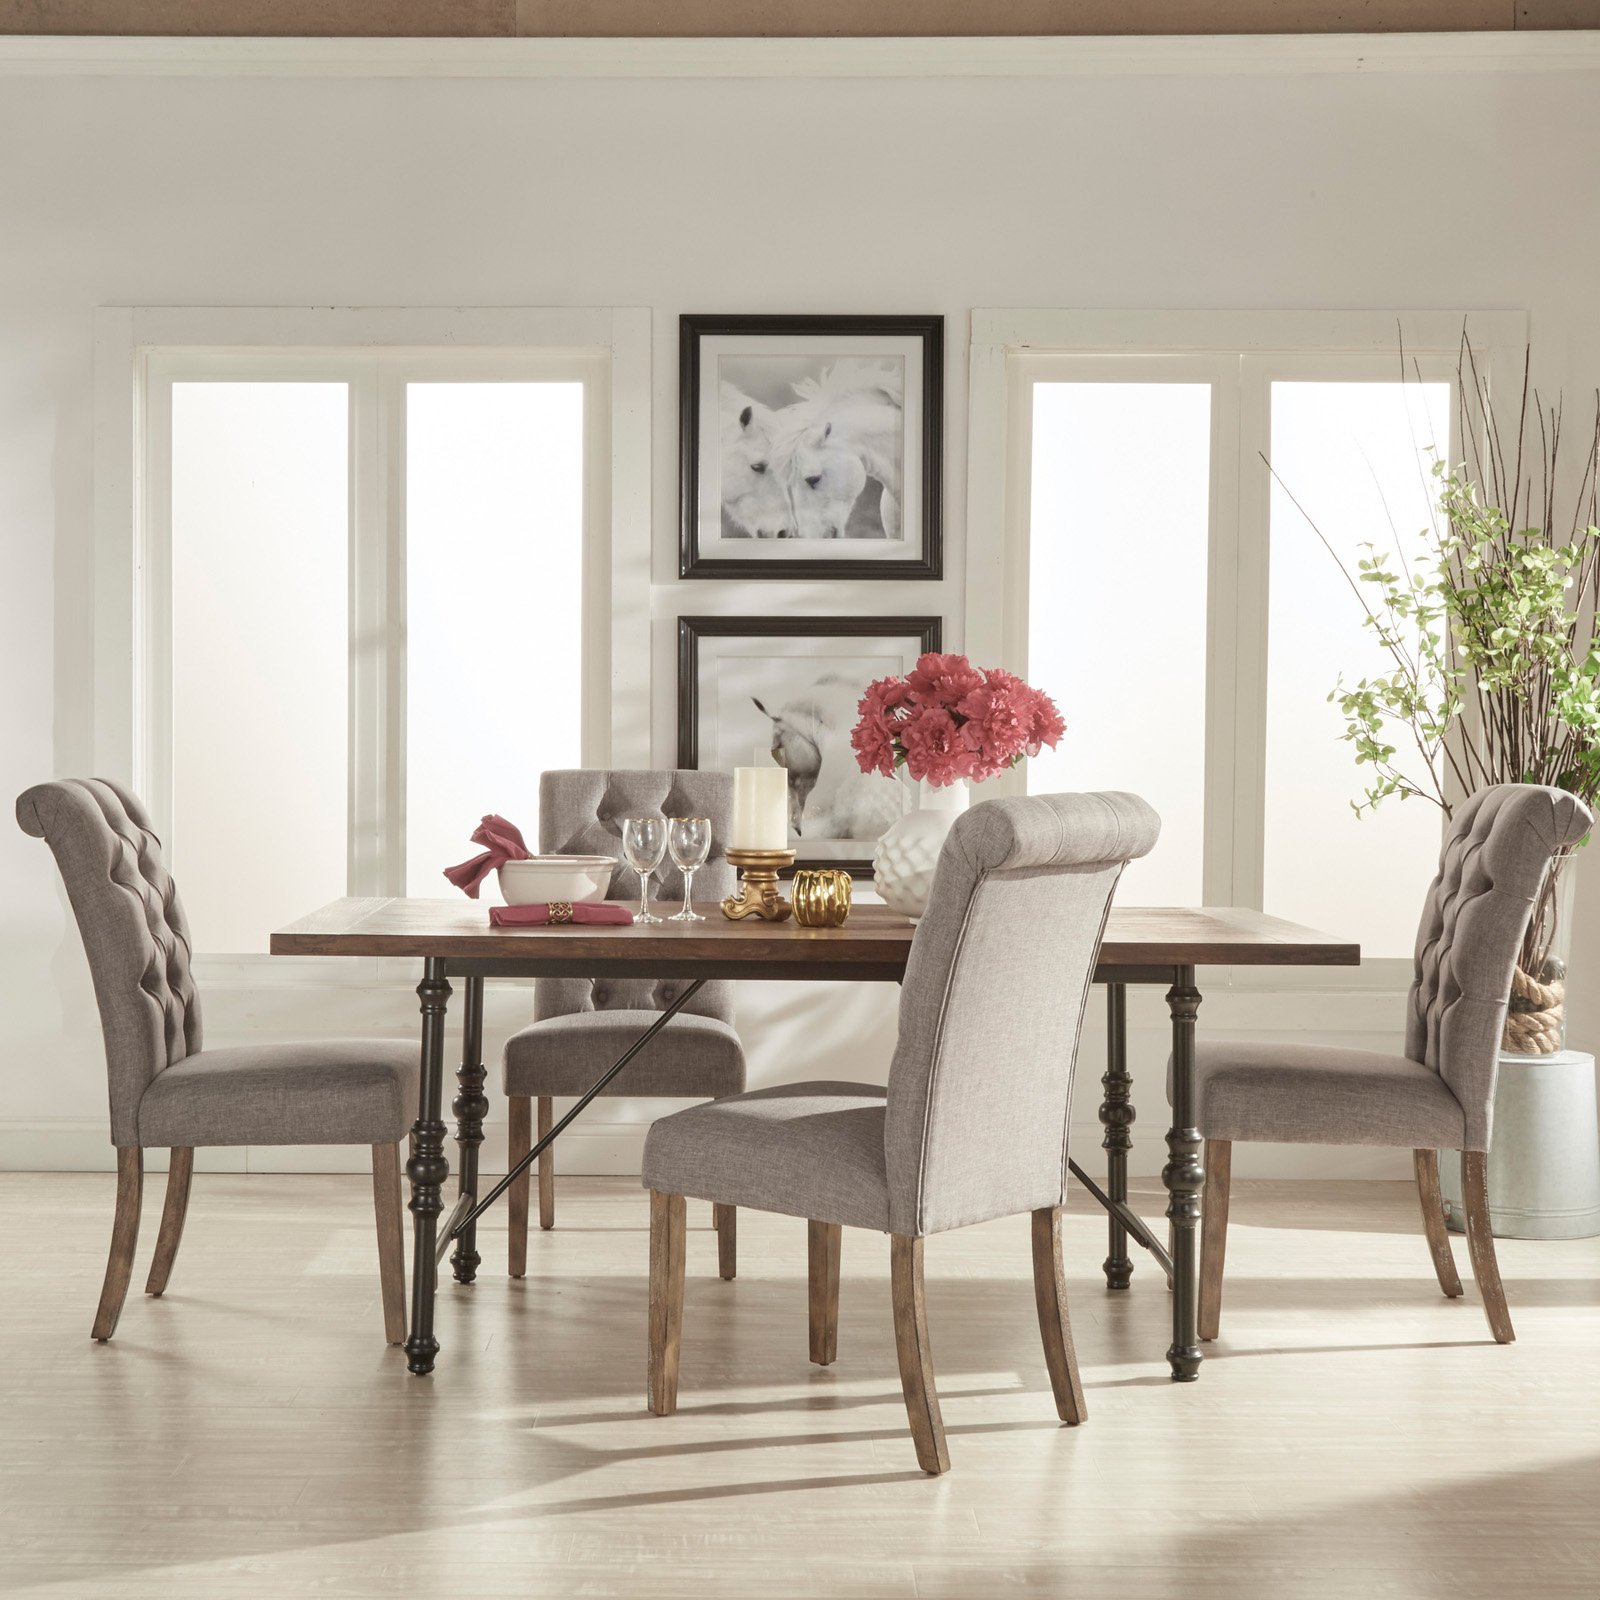 Homelegance 5 Piece Industrial Dining Set with Gray Tufted Chairs